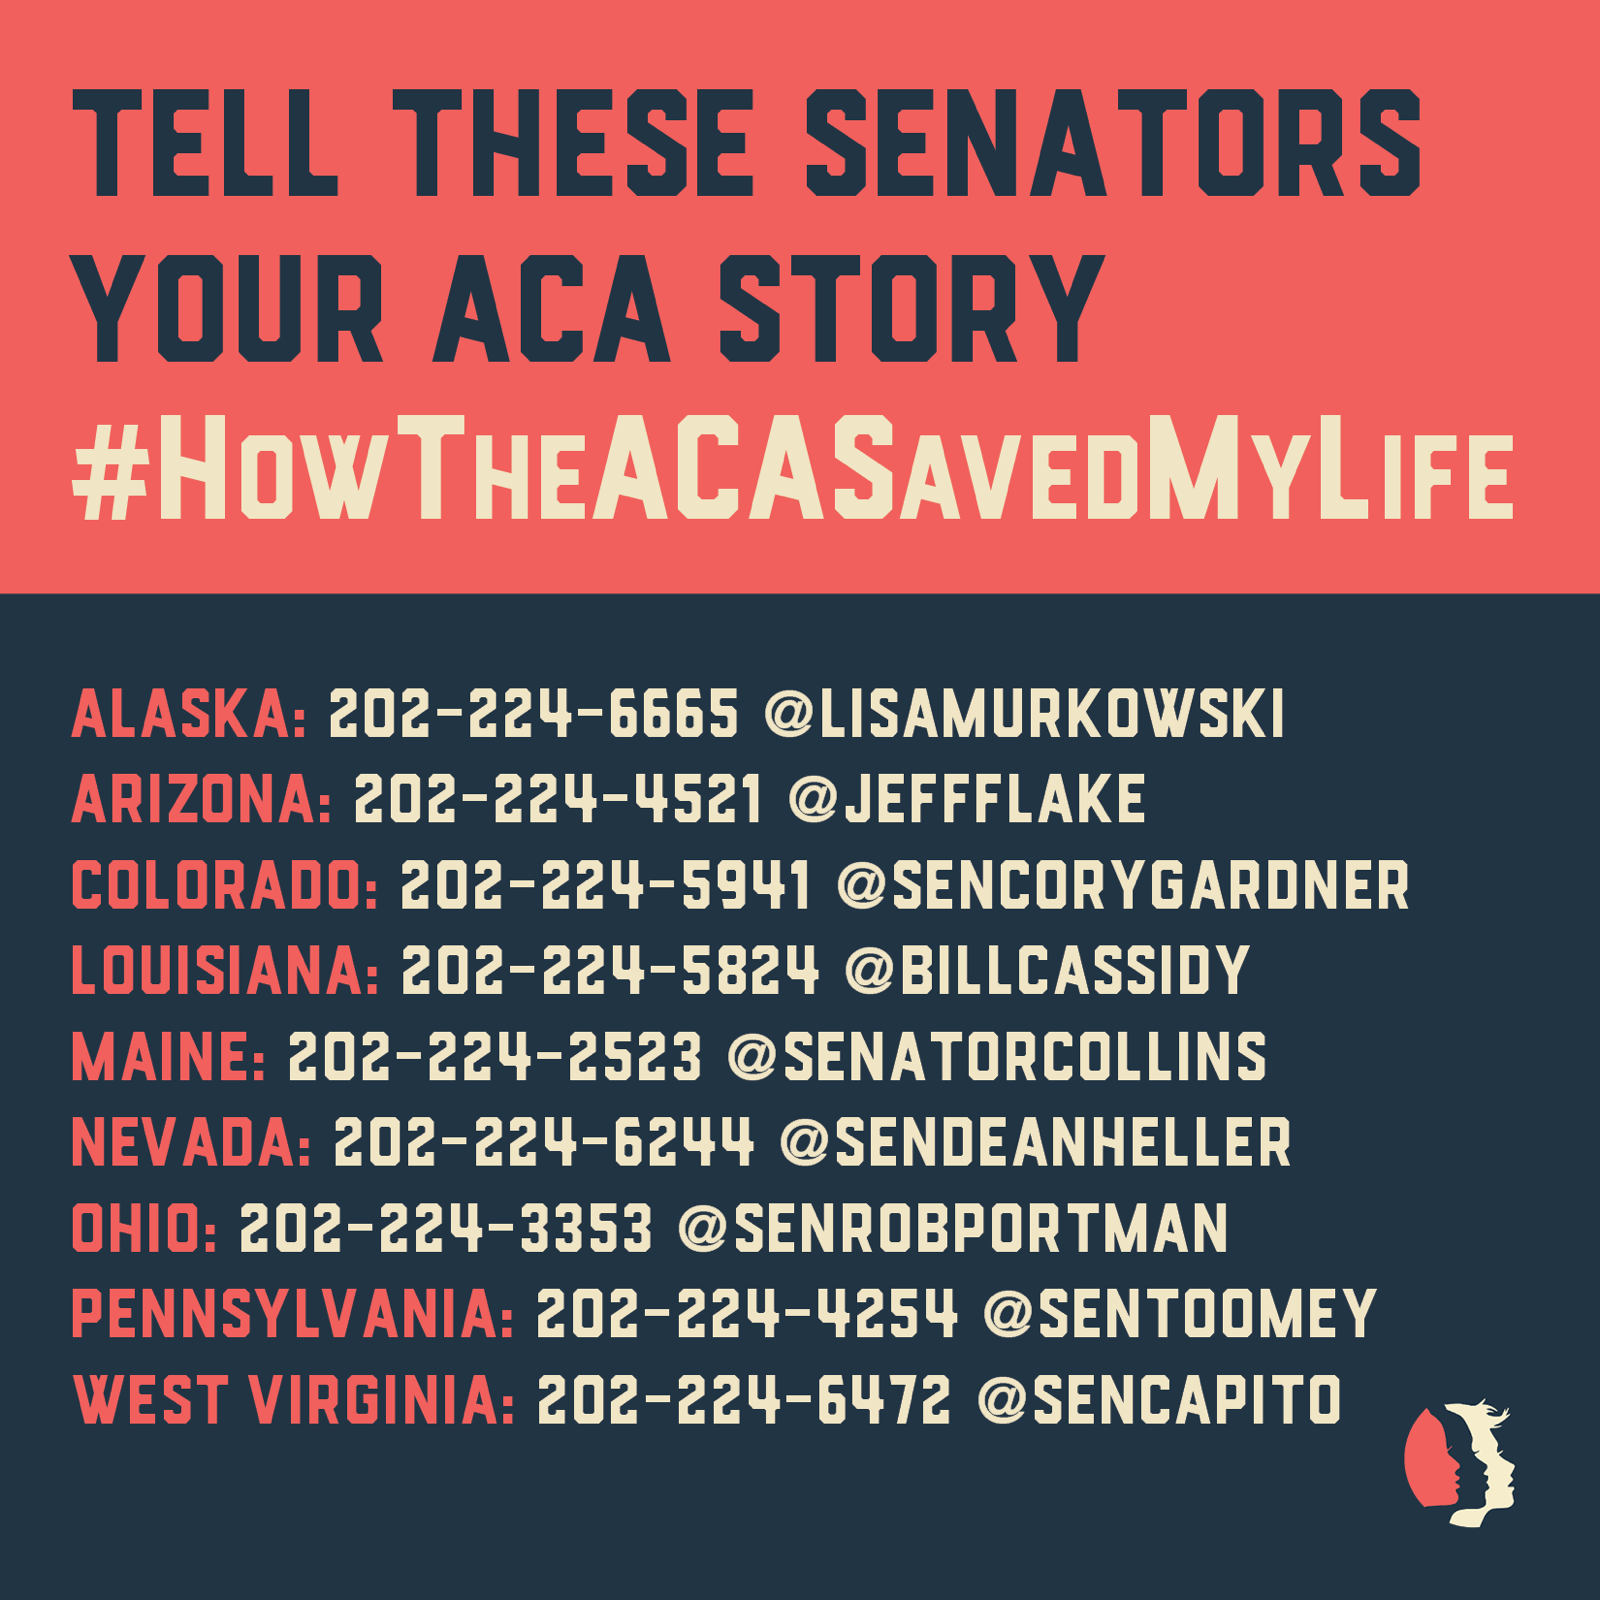 Tell these senators your ACA story #HowTheACASavedMyLife